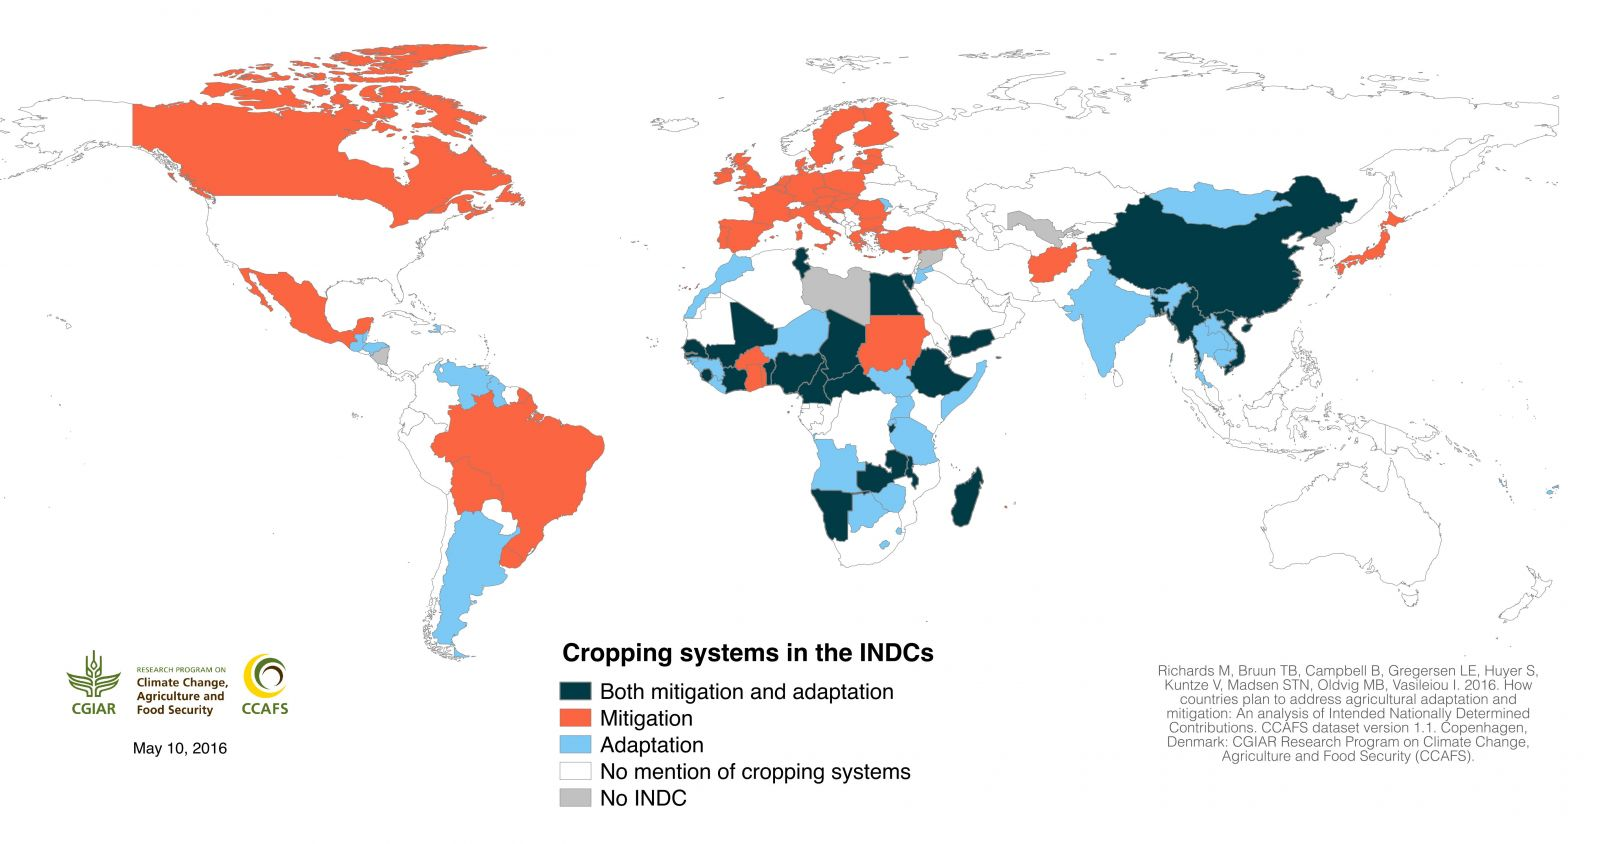 Cropping systems in the INDCs (click to enlarge)